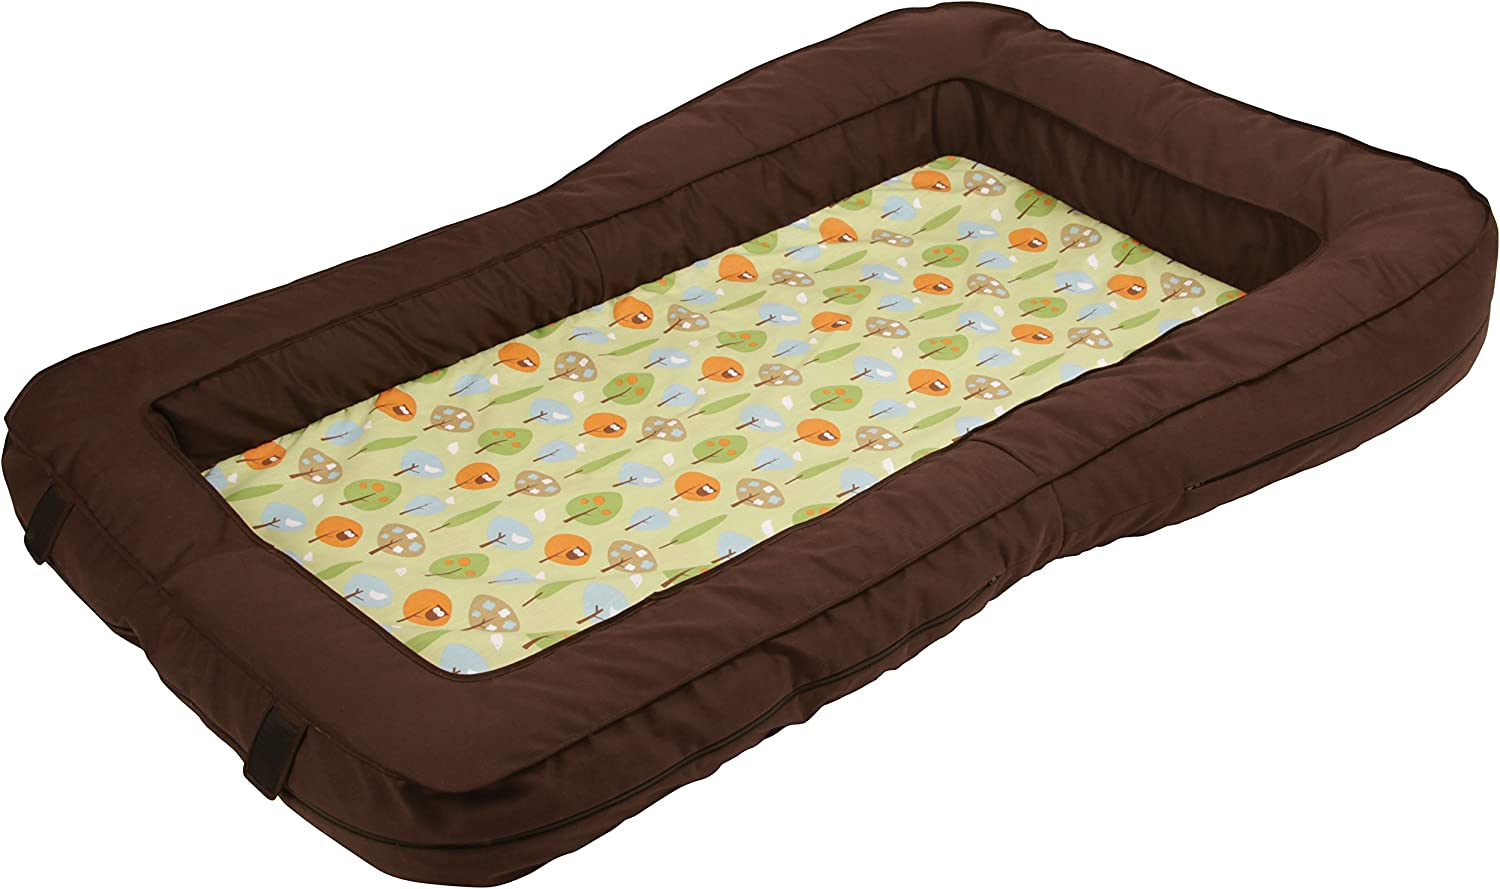 Leachco BumpZZZ Travel Bed Cover, Brown Green Forest Frolics